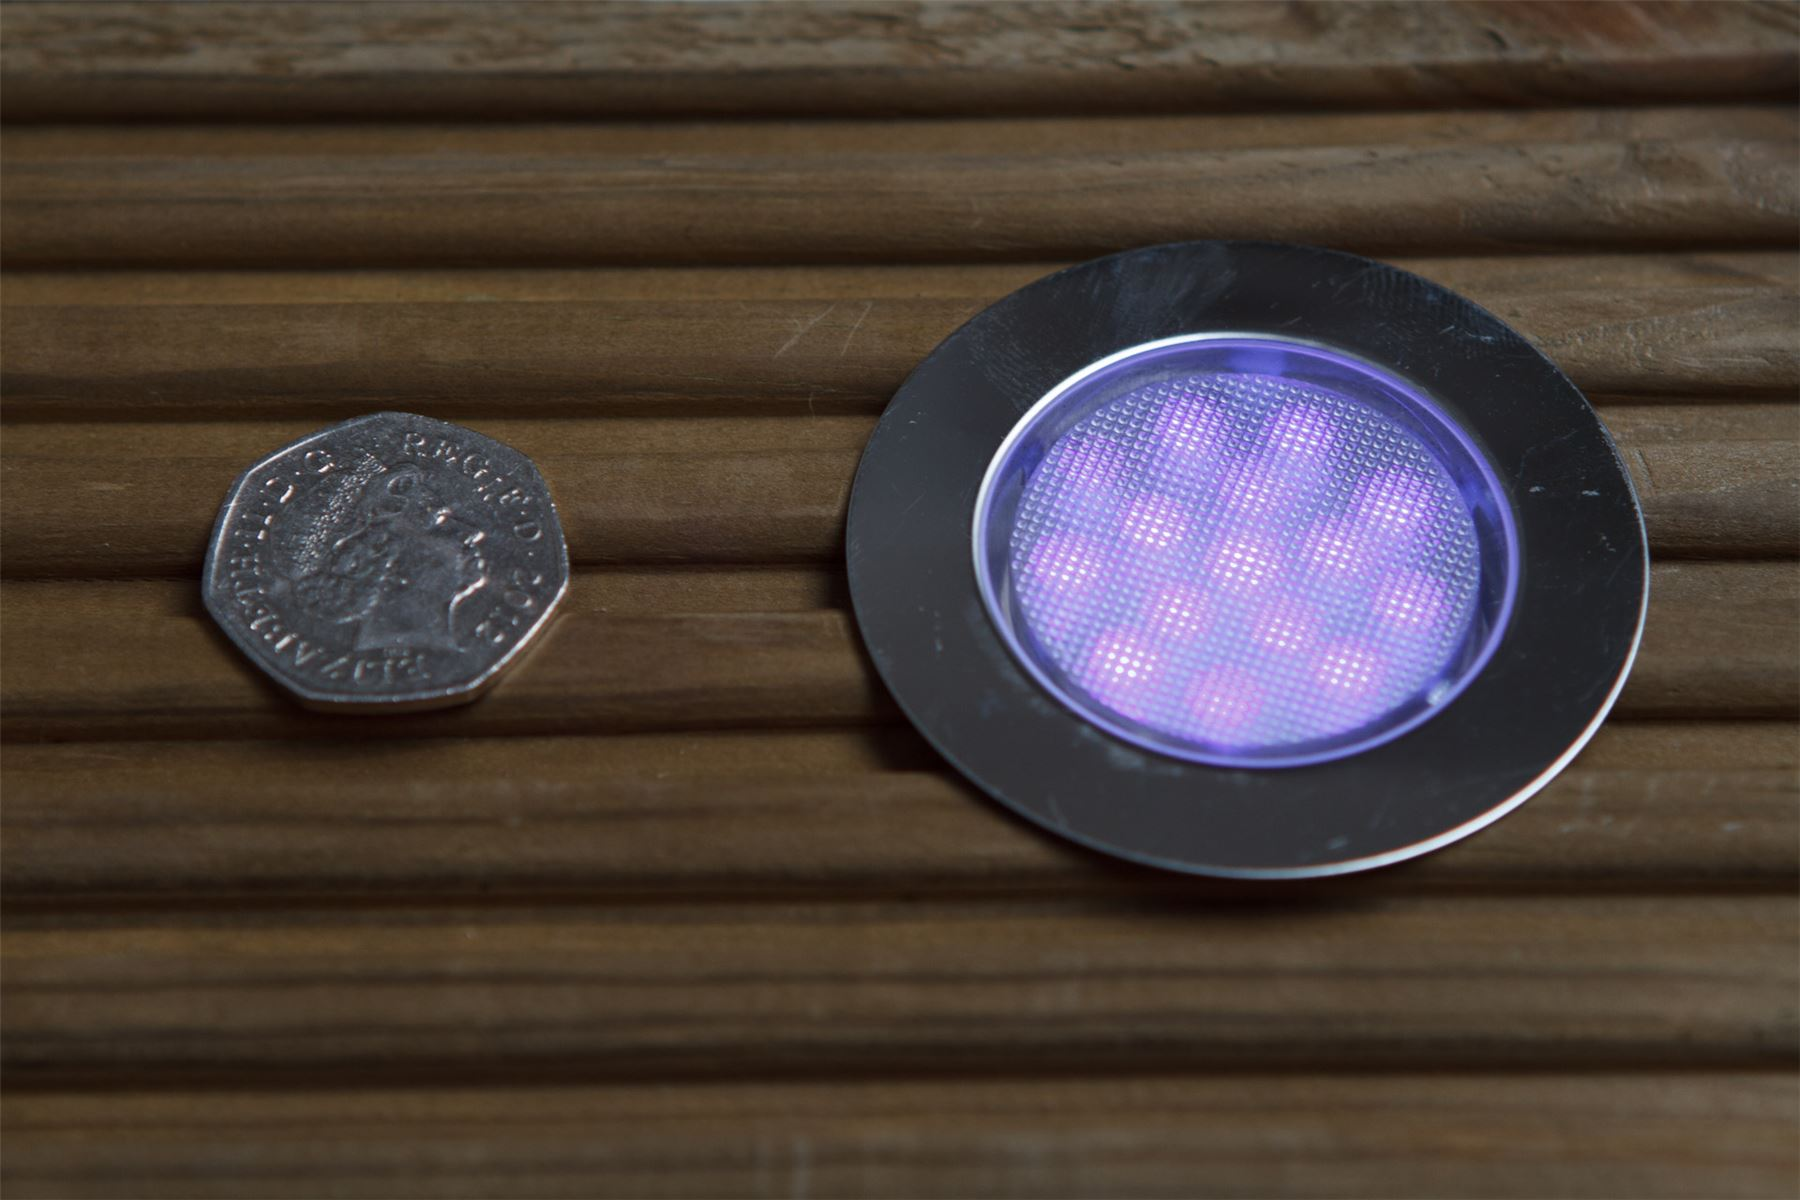 Led deck lighting democraciaejustica 10 x stainless steel led deck lights kitchen outdoor aloadofball Image collections